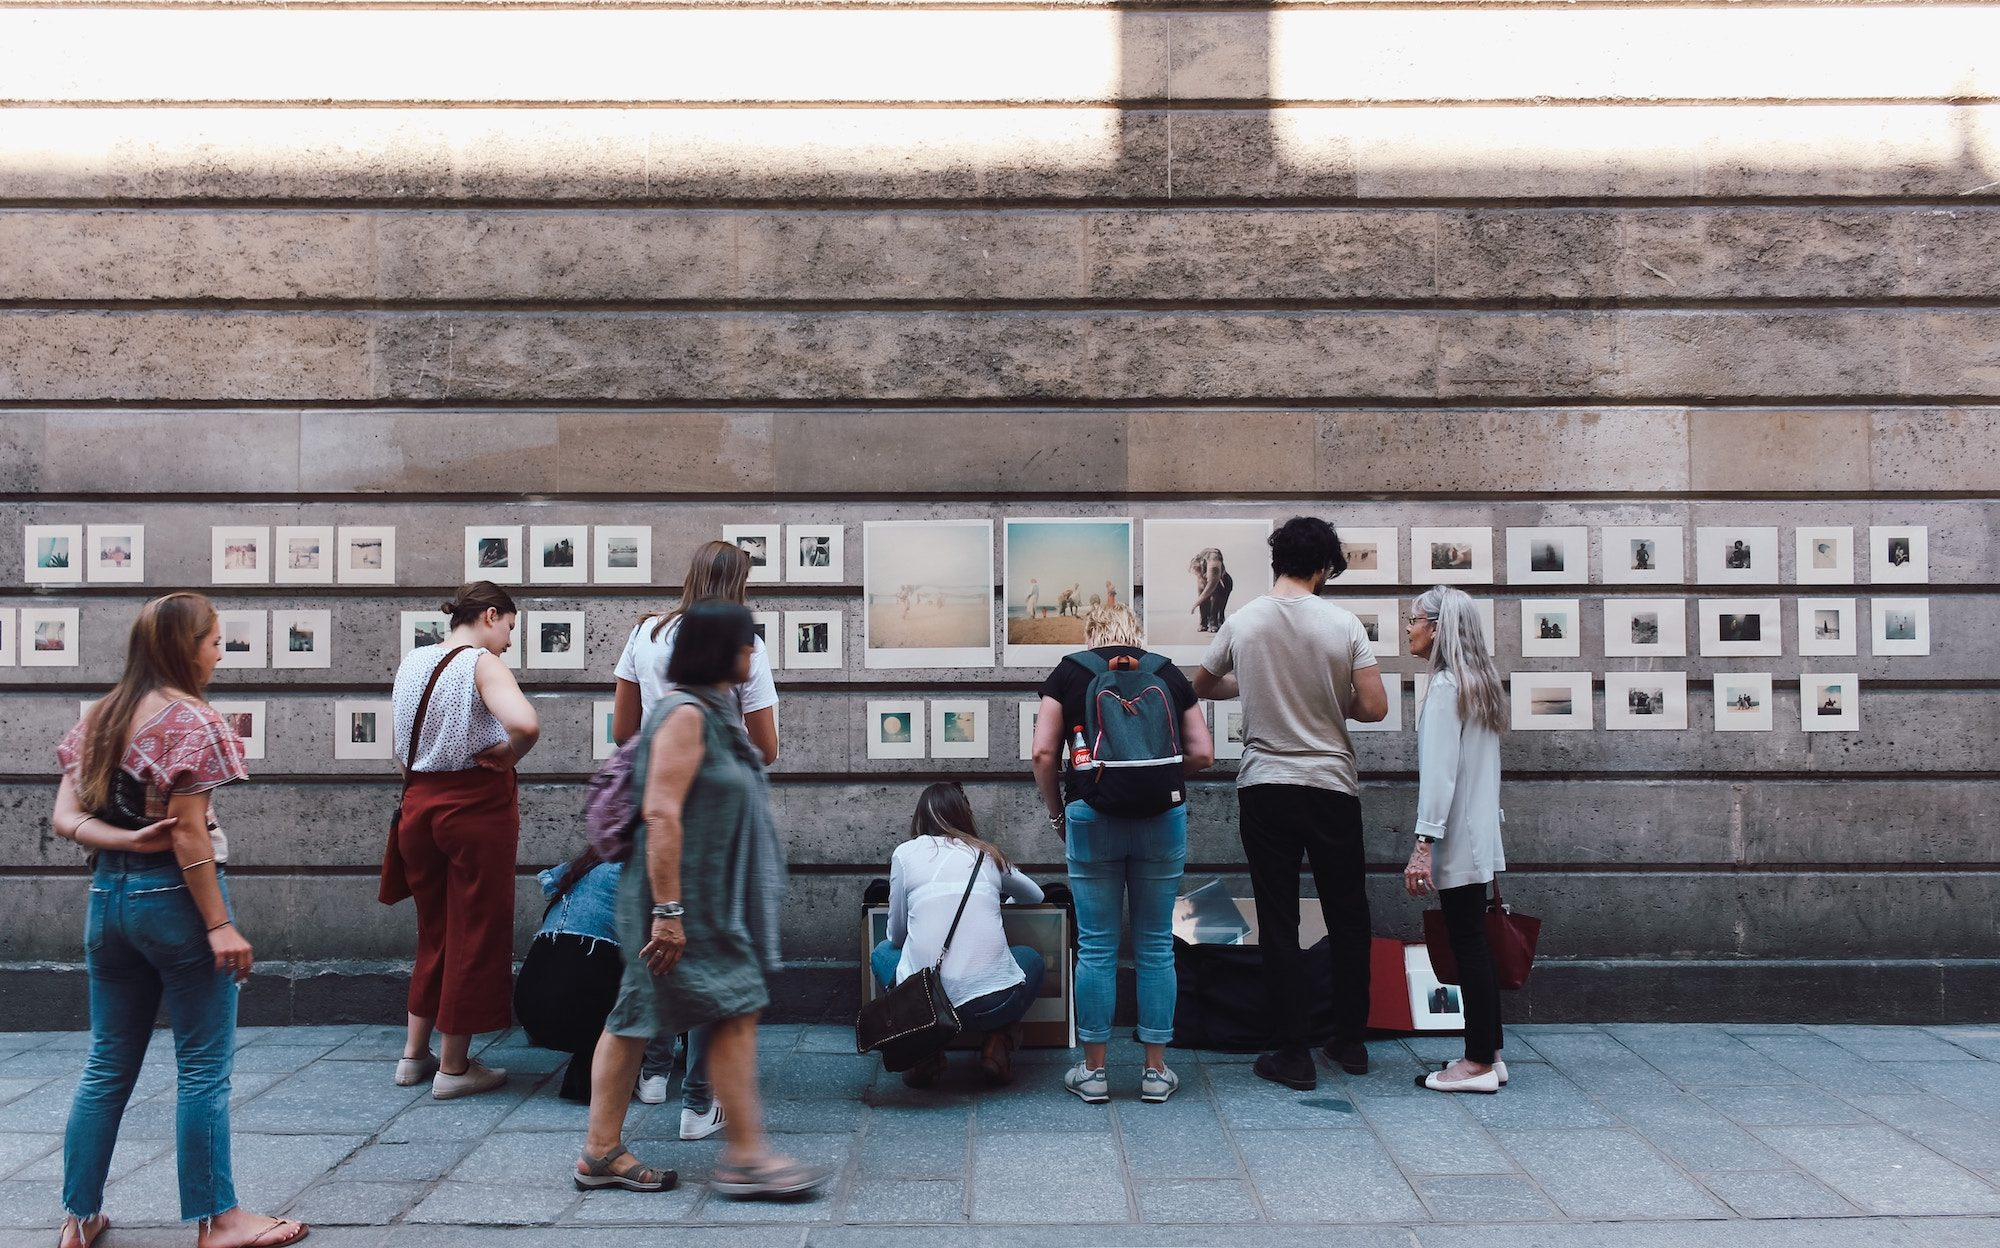 People stopping to look at a makeshift photography exhibition on the streets of the Marais neighbourhood in Paris.